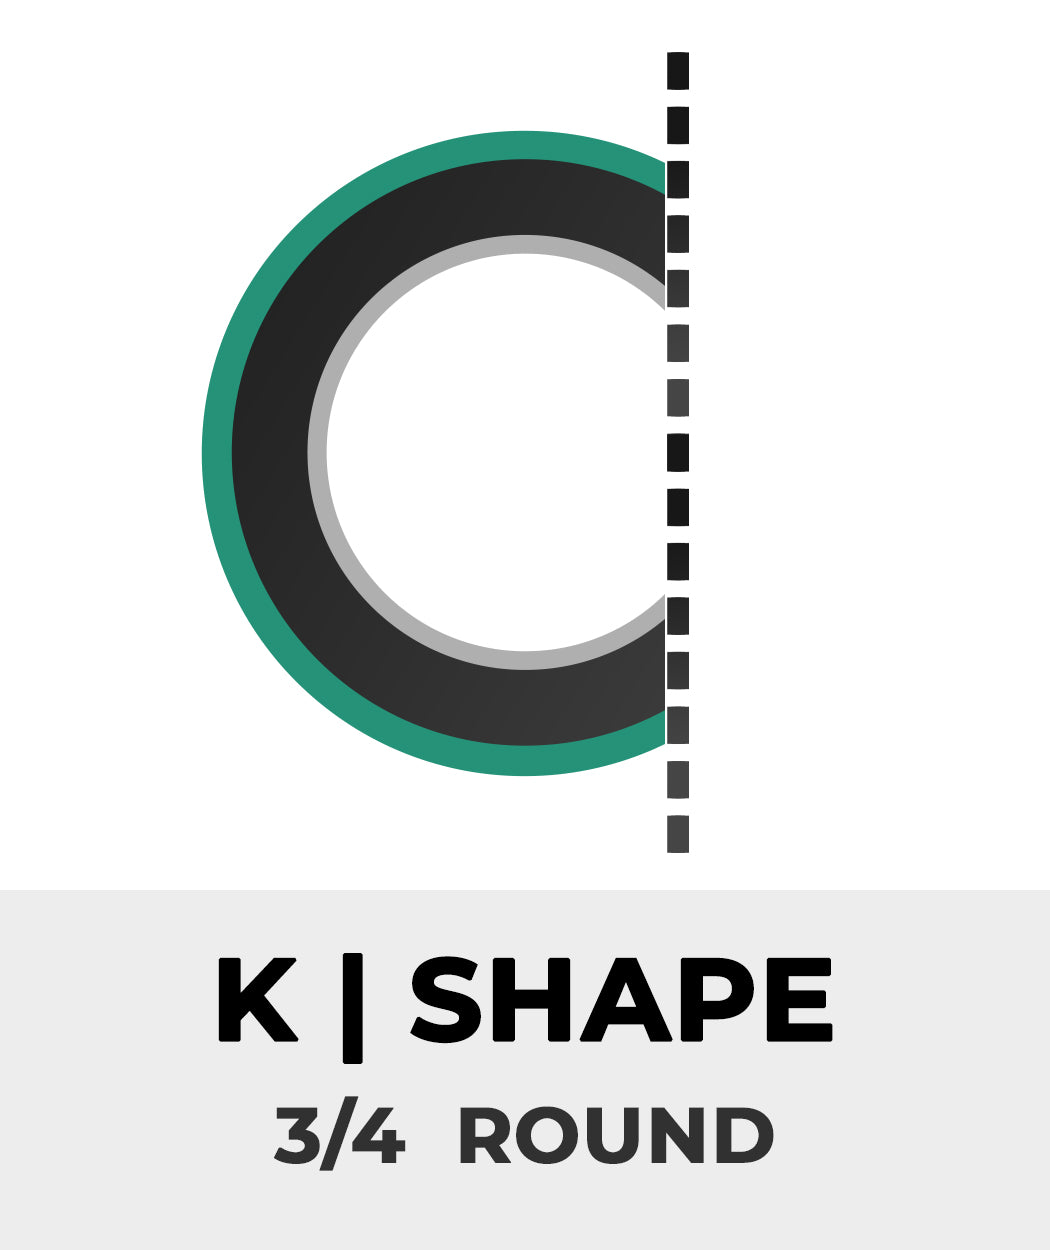 Plan Shape K - 3/4 Round